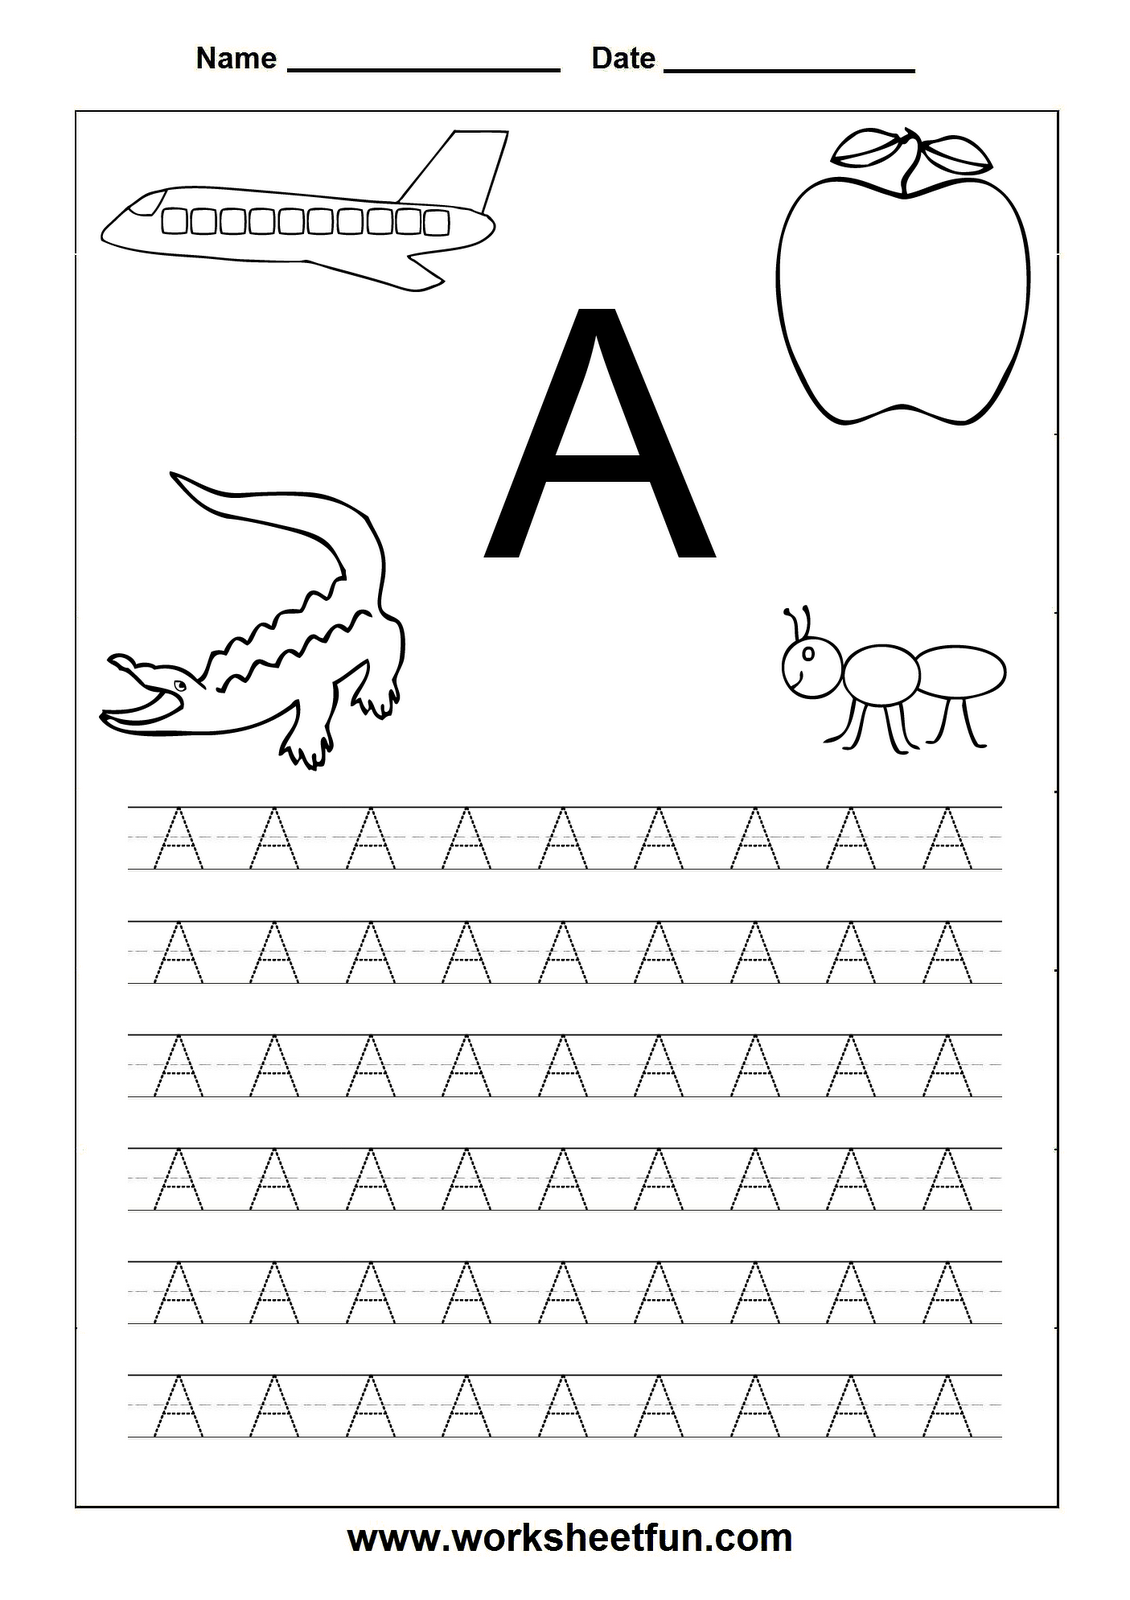 worksheet Letter I Worksheets For Preschool letter worksheets for kindergarten printable letters pinterest printable